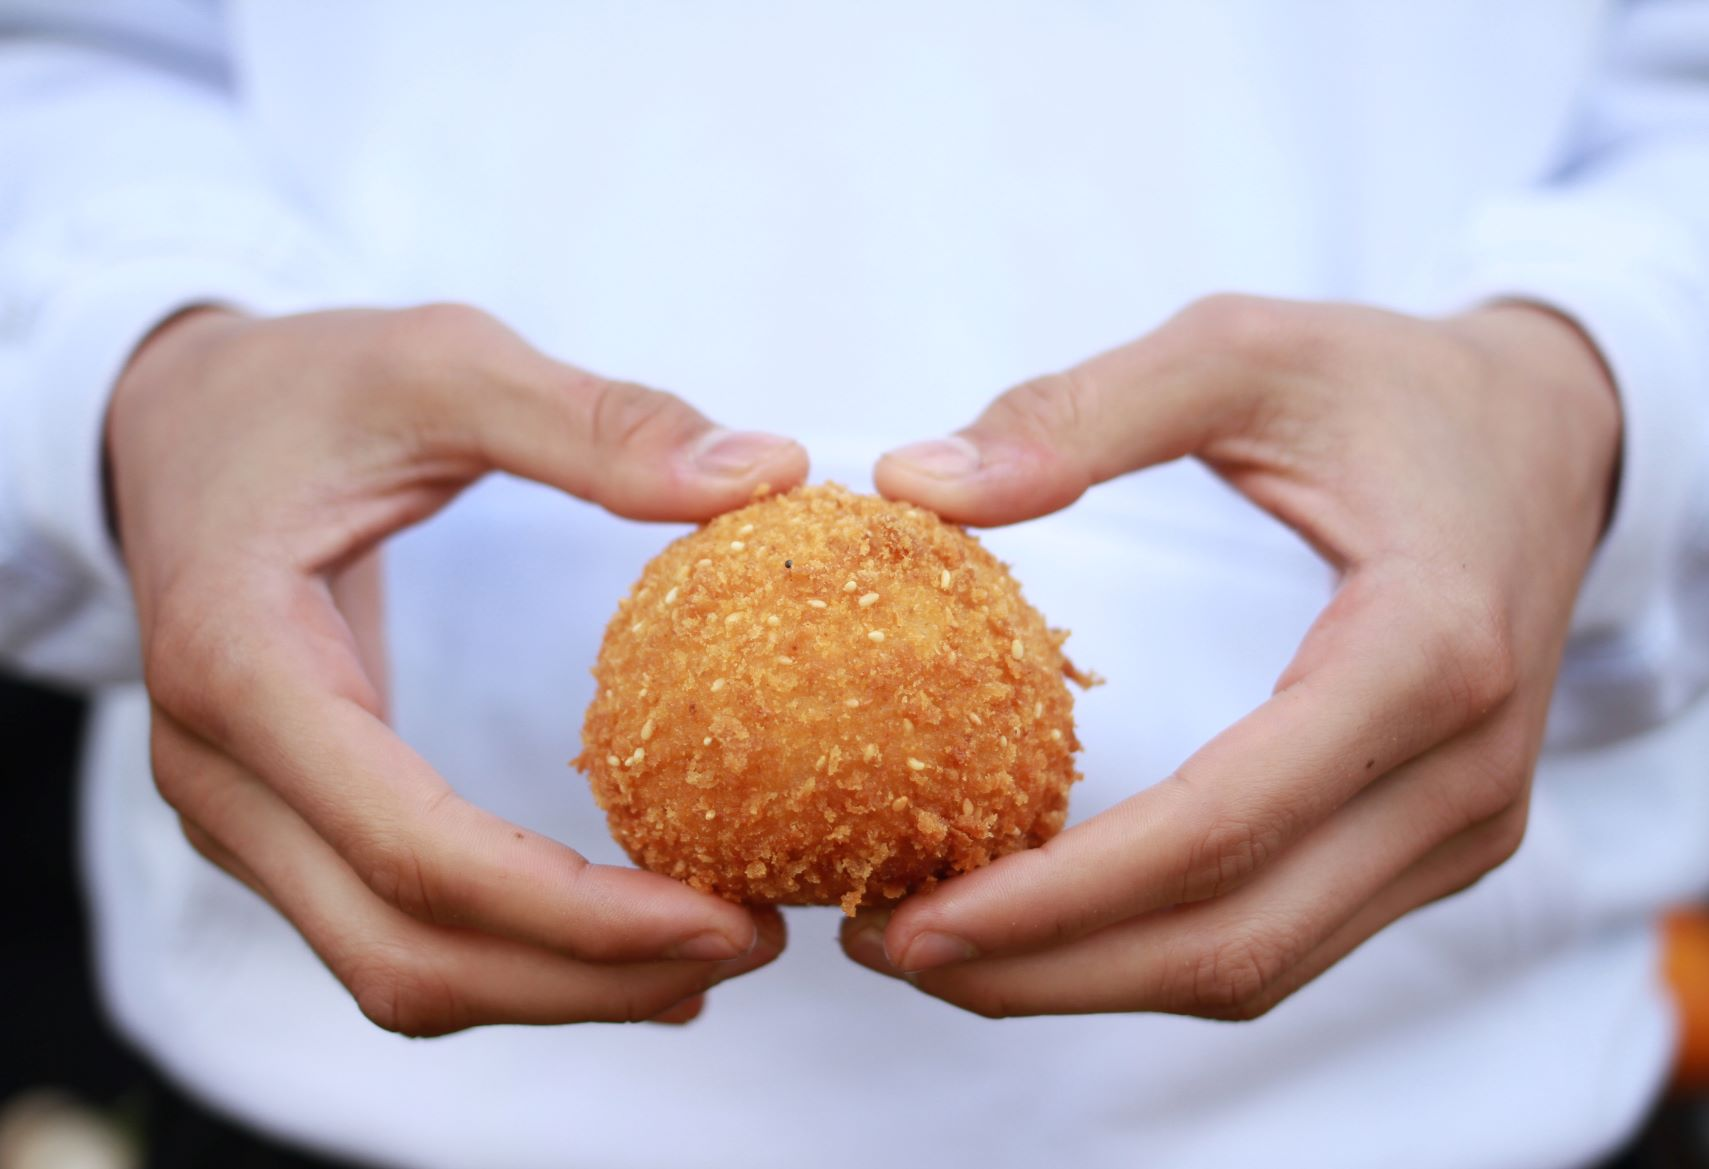 man about to break arancini ball in half using his hands, he is wearing and chefs coat